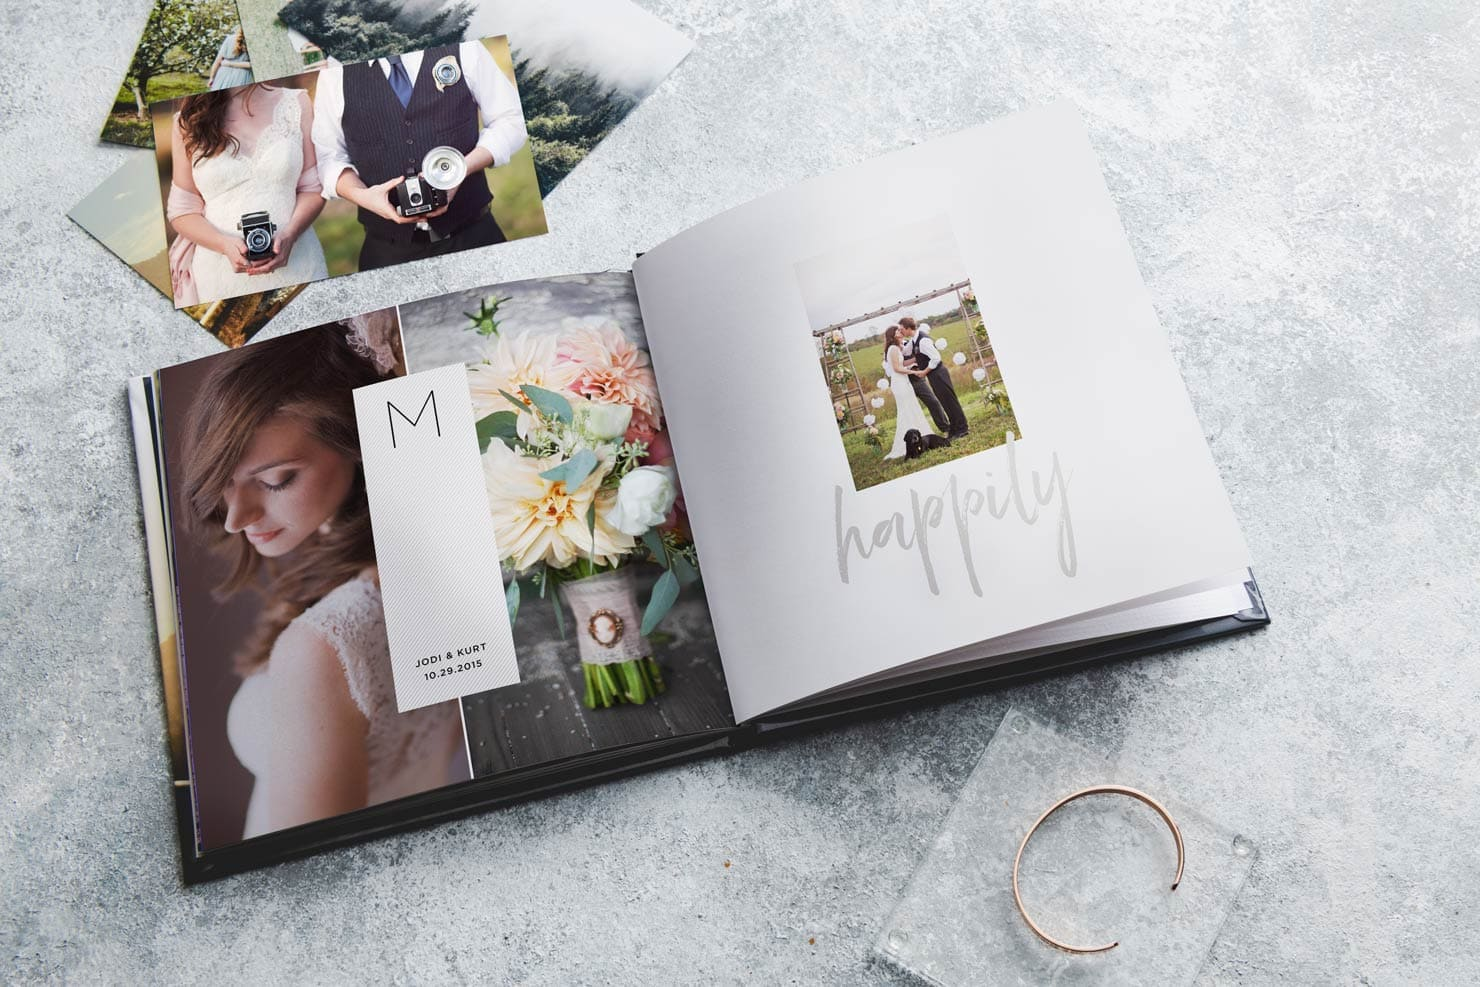 modern wedding album layflat on table with personalized captions